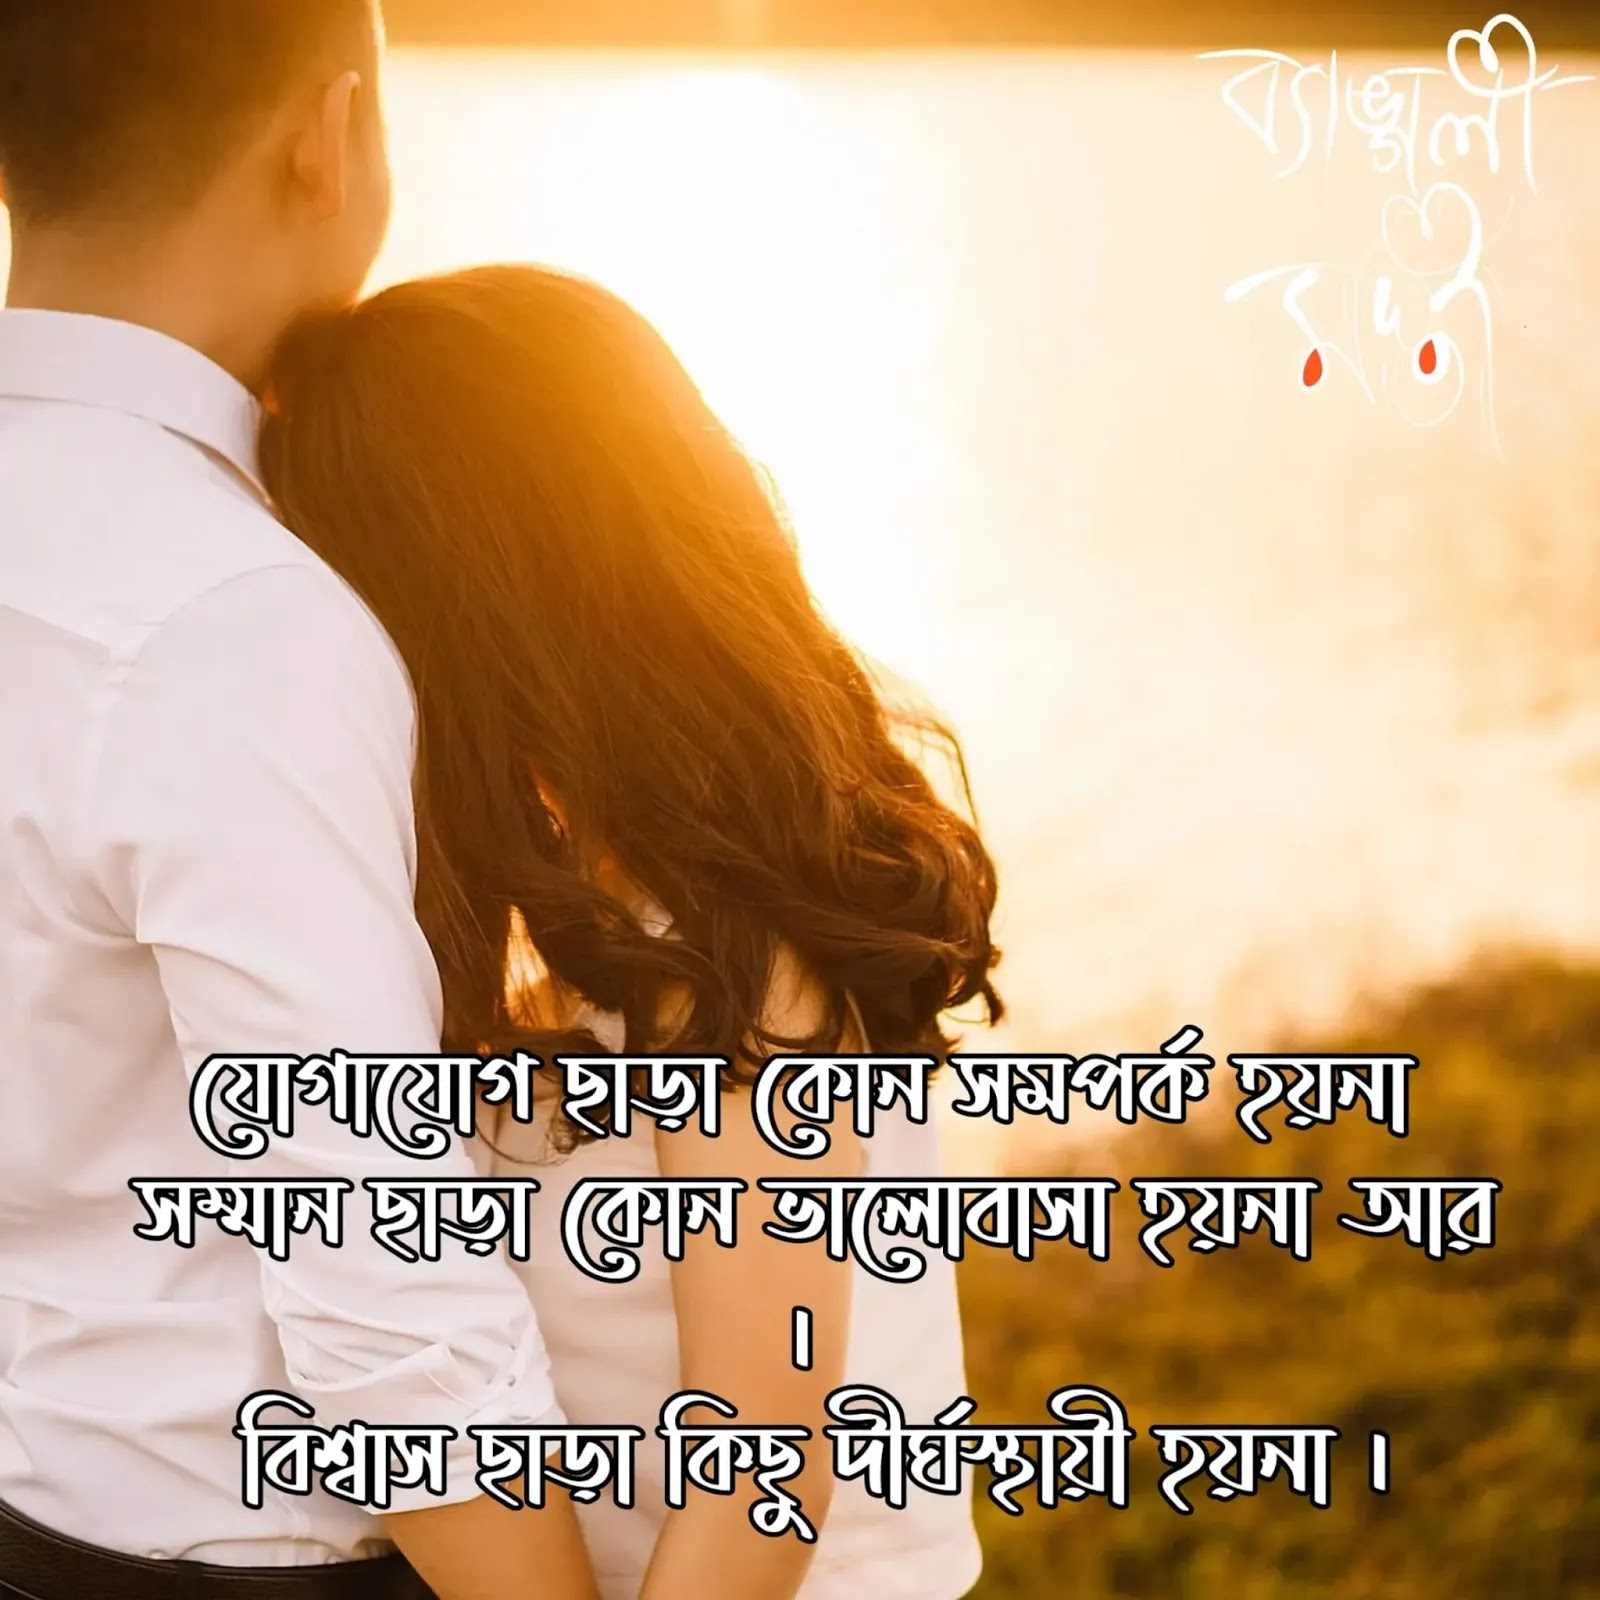 motivational quotes in Bengali, motivational Bengali, positive Bengali quotes, motivational quotes Bengali pic, motivational quotes in Bengali language, motivational quotes in Bengali download, motivational quotes images in Bengali, motivational quotes in Bengali pdf download